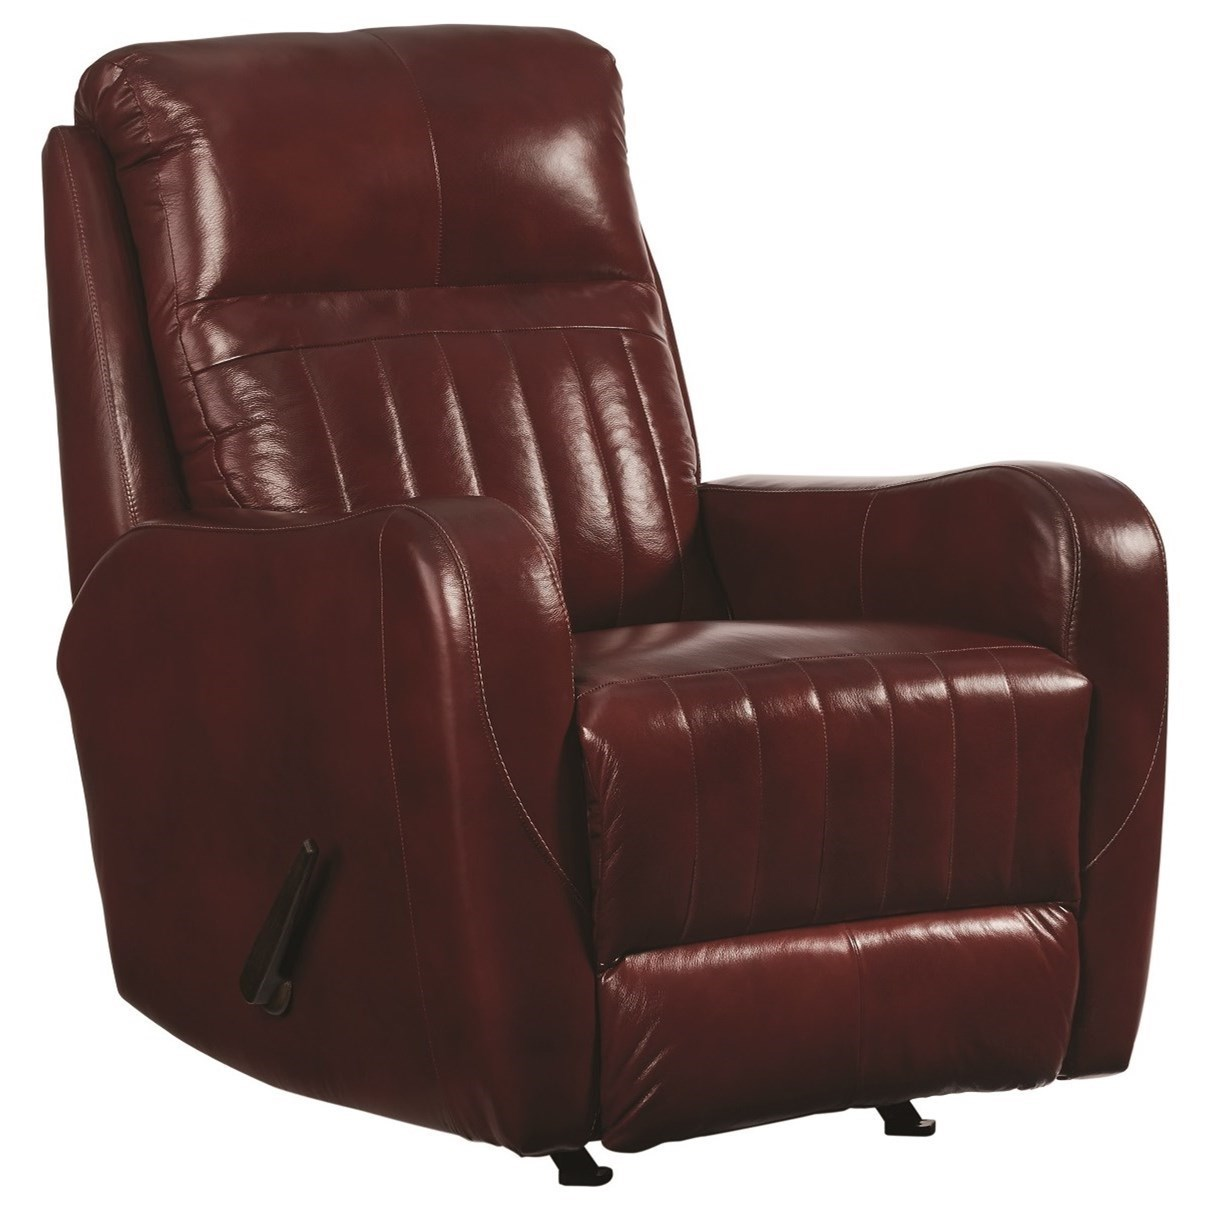 Transitional Rocker Power Recliner with SoCozi Technology